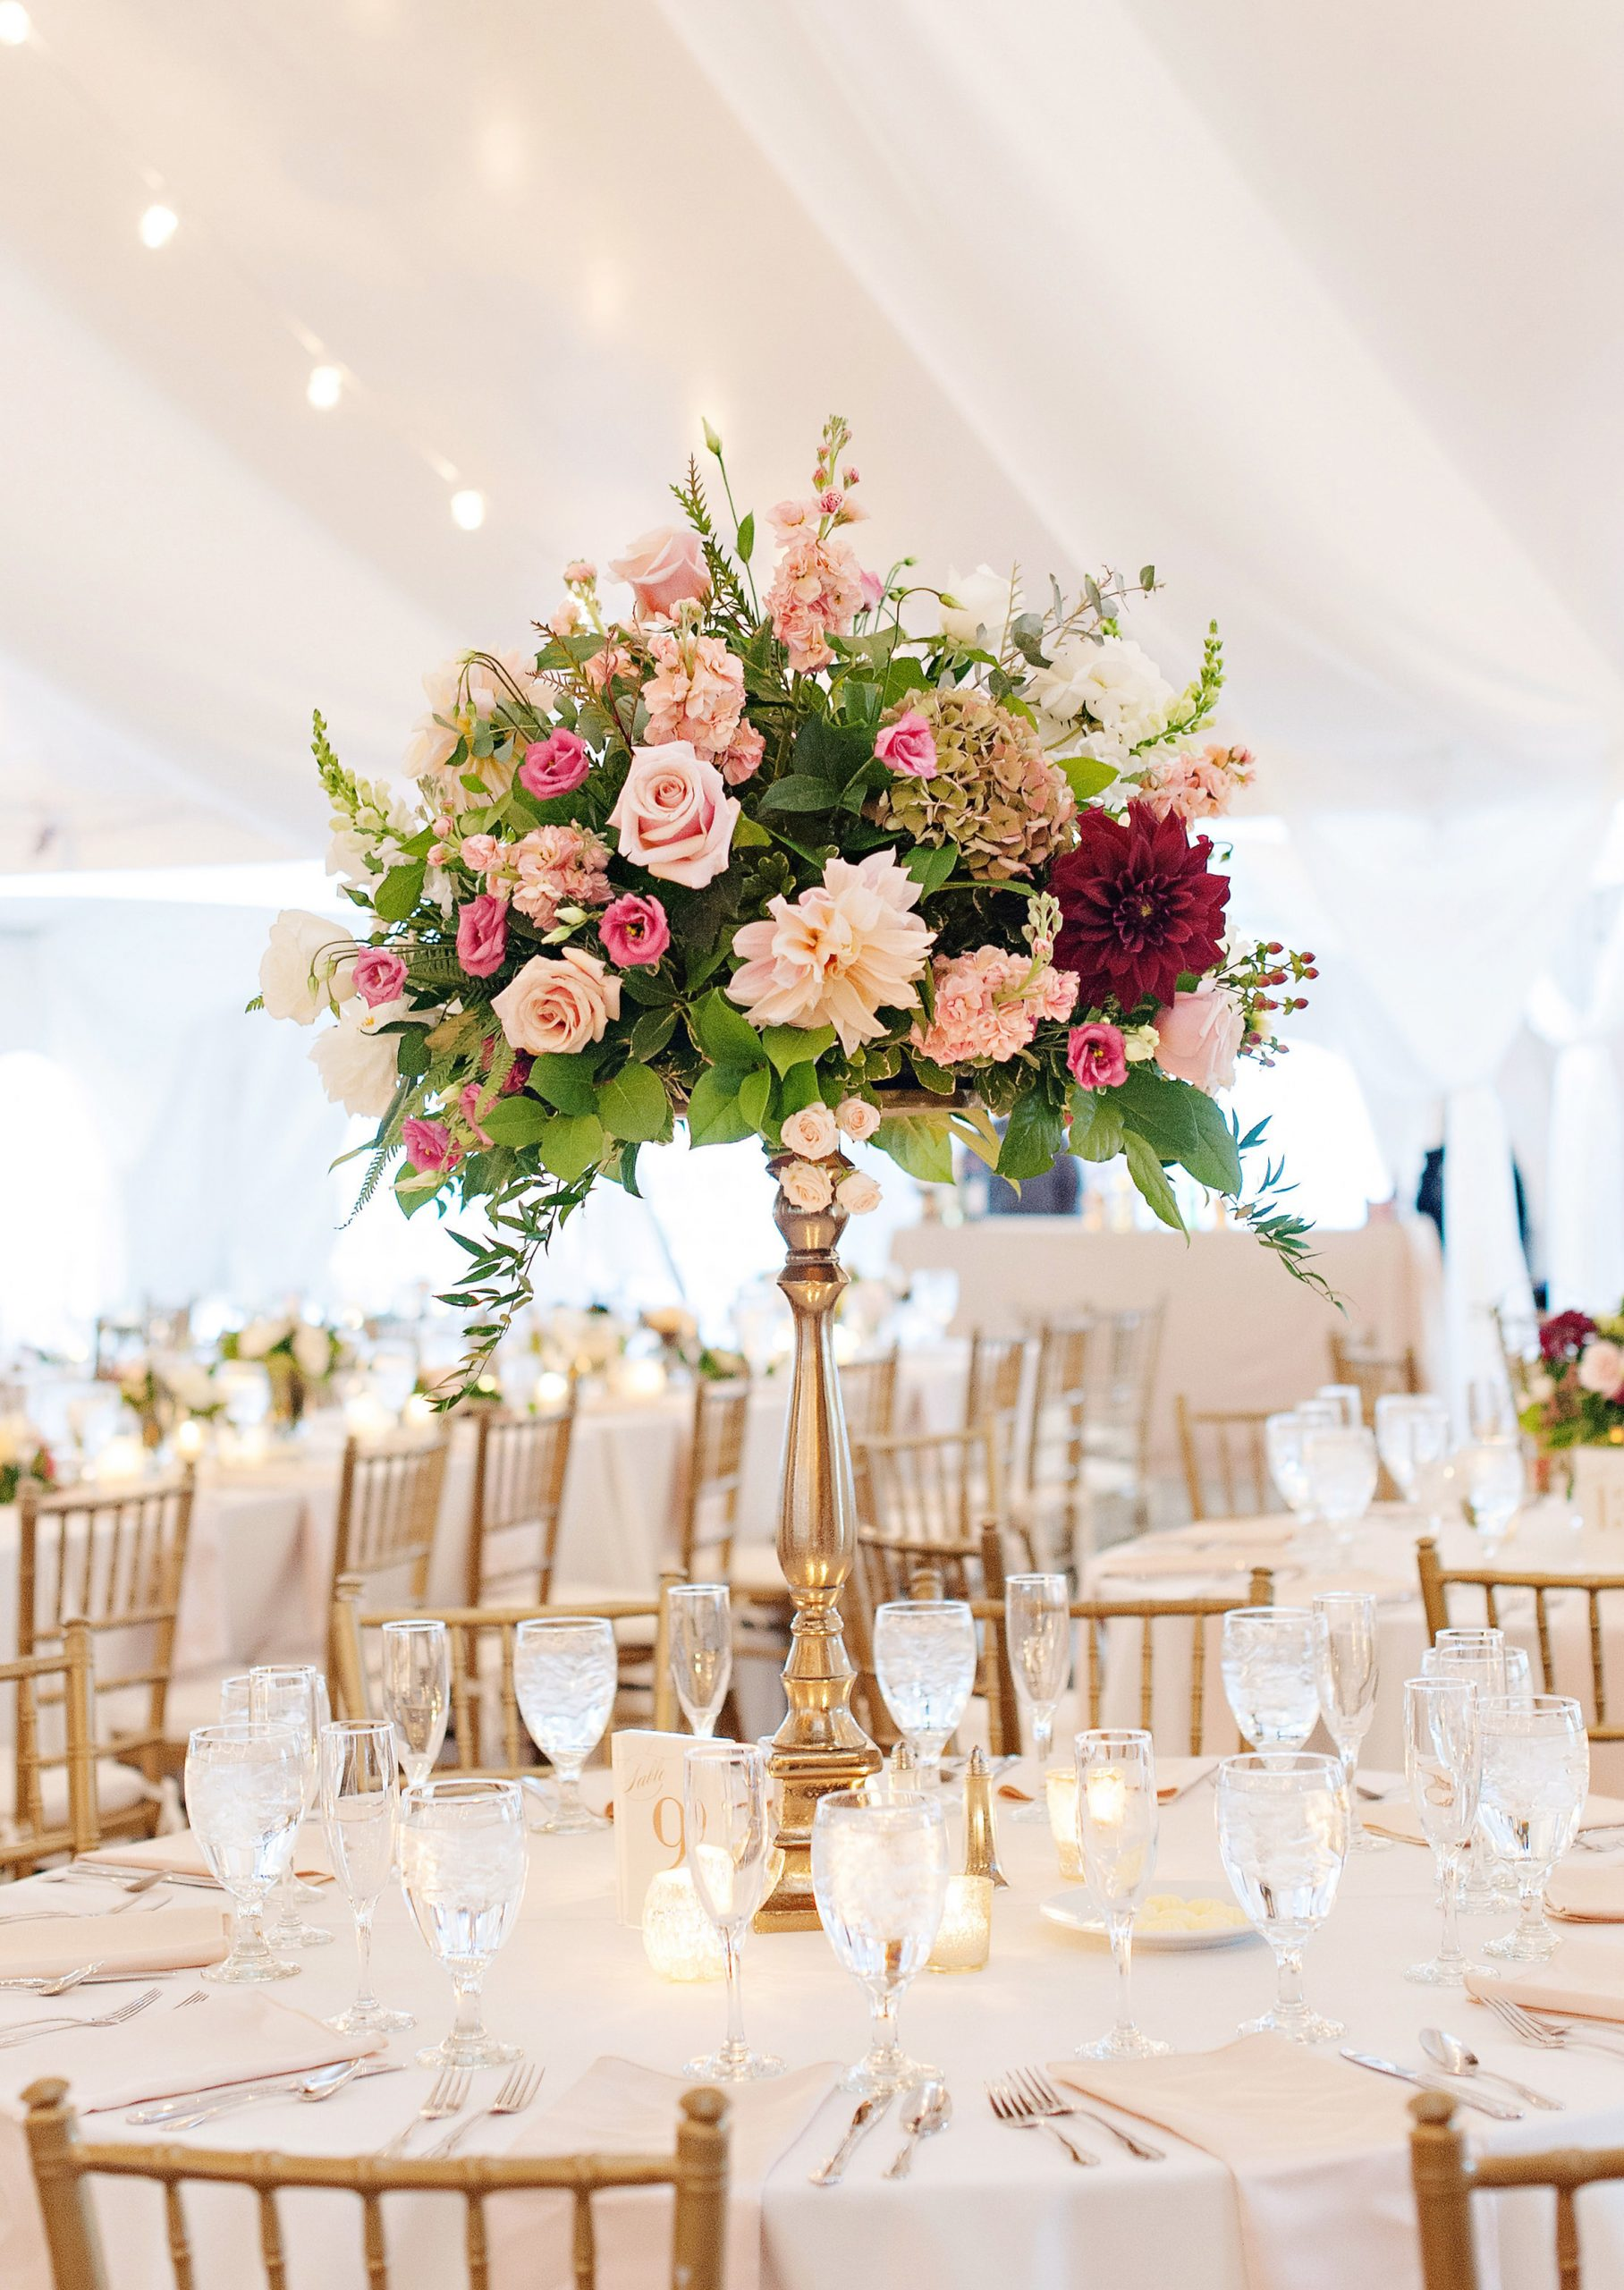 Striking tall wedding floral table centerpiece on a gold pedestal in fall pastel flowers of blush, pink, and burgundy accents. Light and airy tented outdoor park wedding.